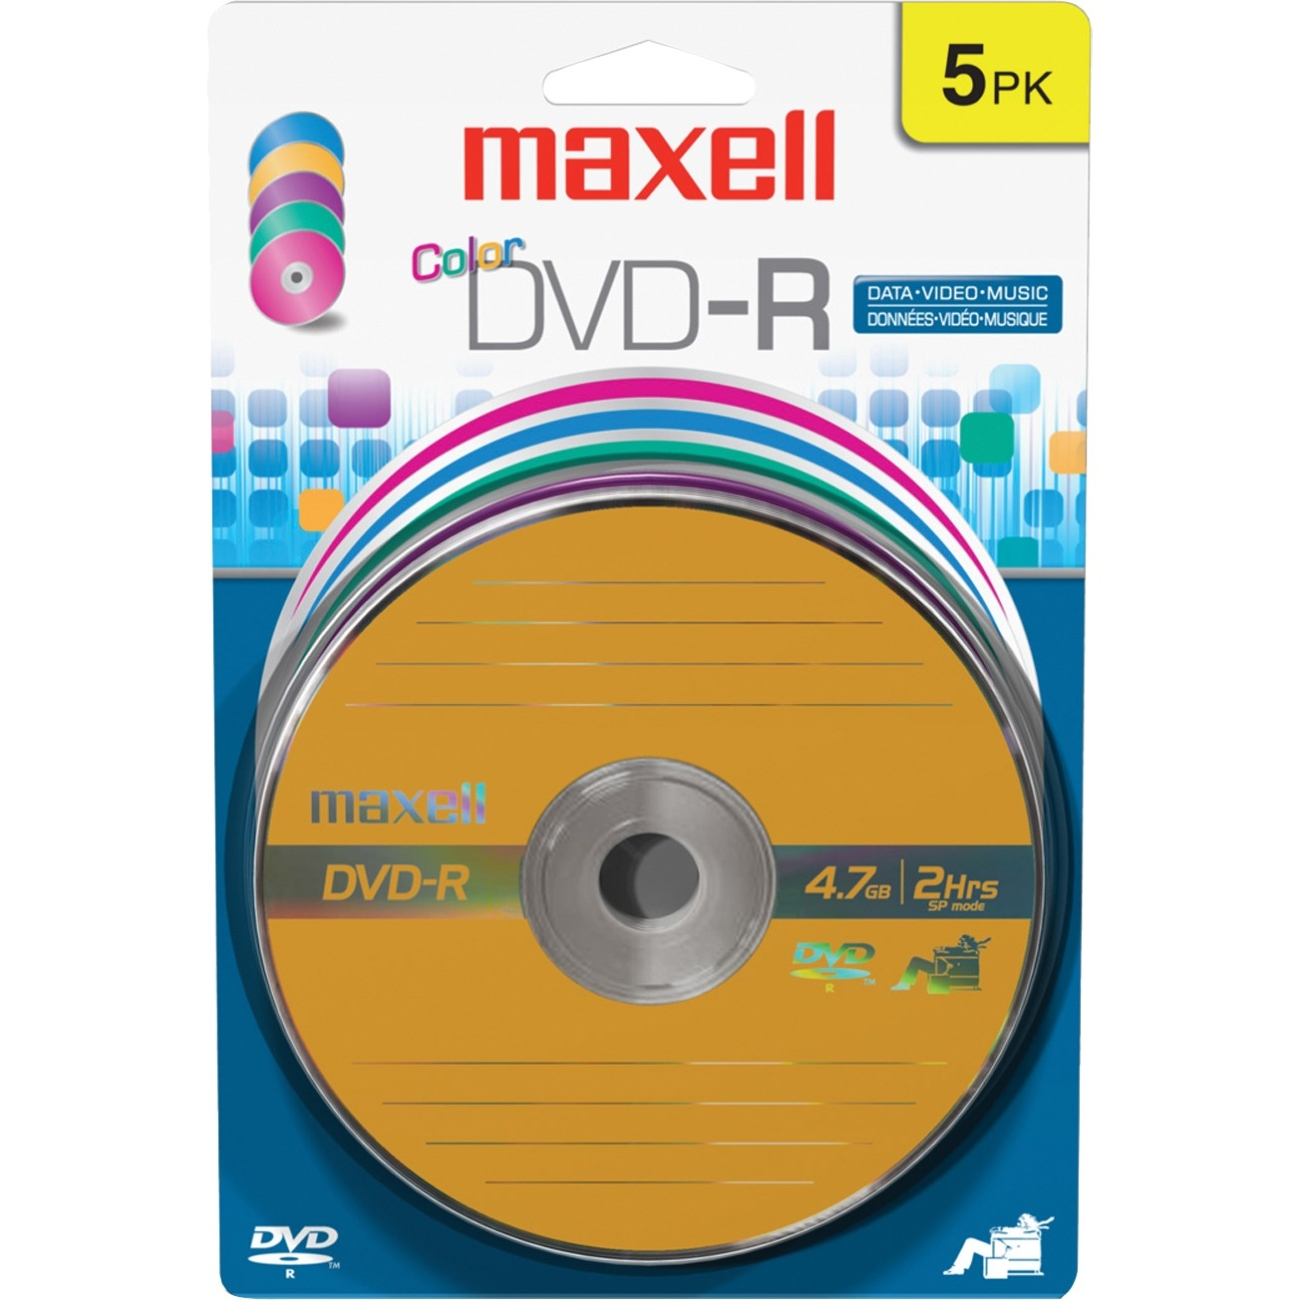 Maxell 16x DVD-R Media - 4.7GB - 120mm Standard - 5 Pack Blister Pack